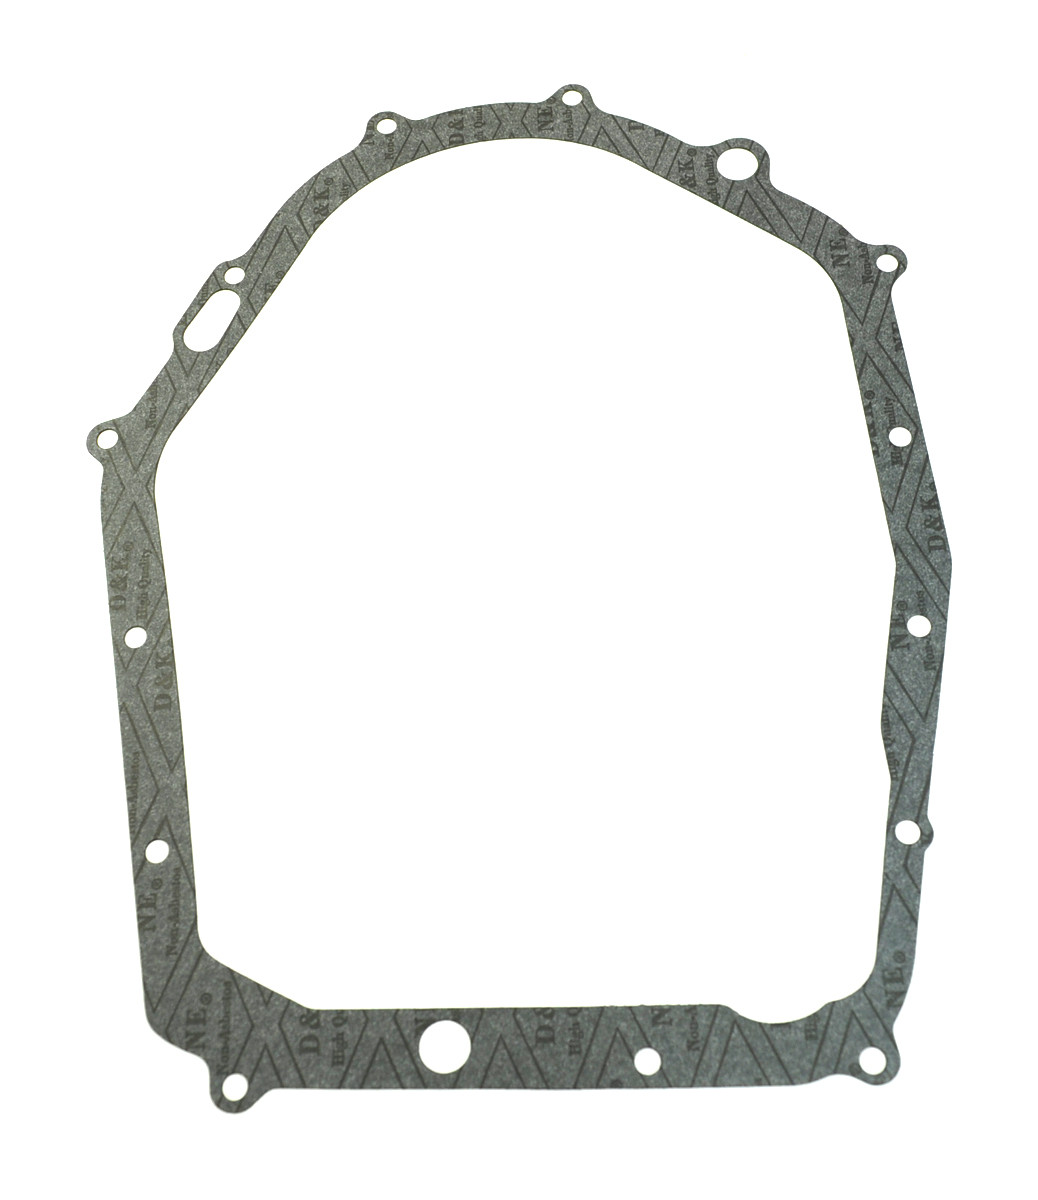 CLUTCH COVER GASKET Fits YAMAHA 3GD-15461-00-00